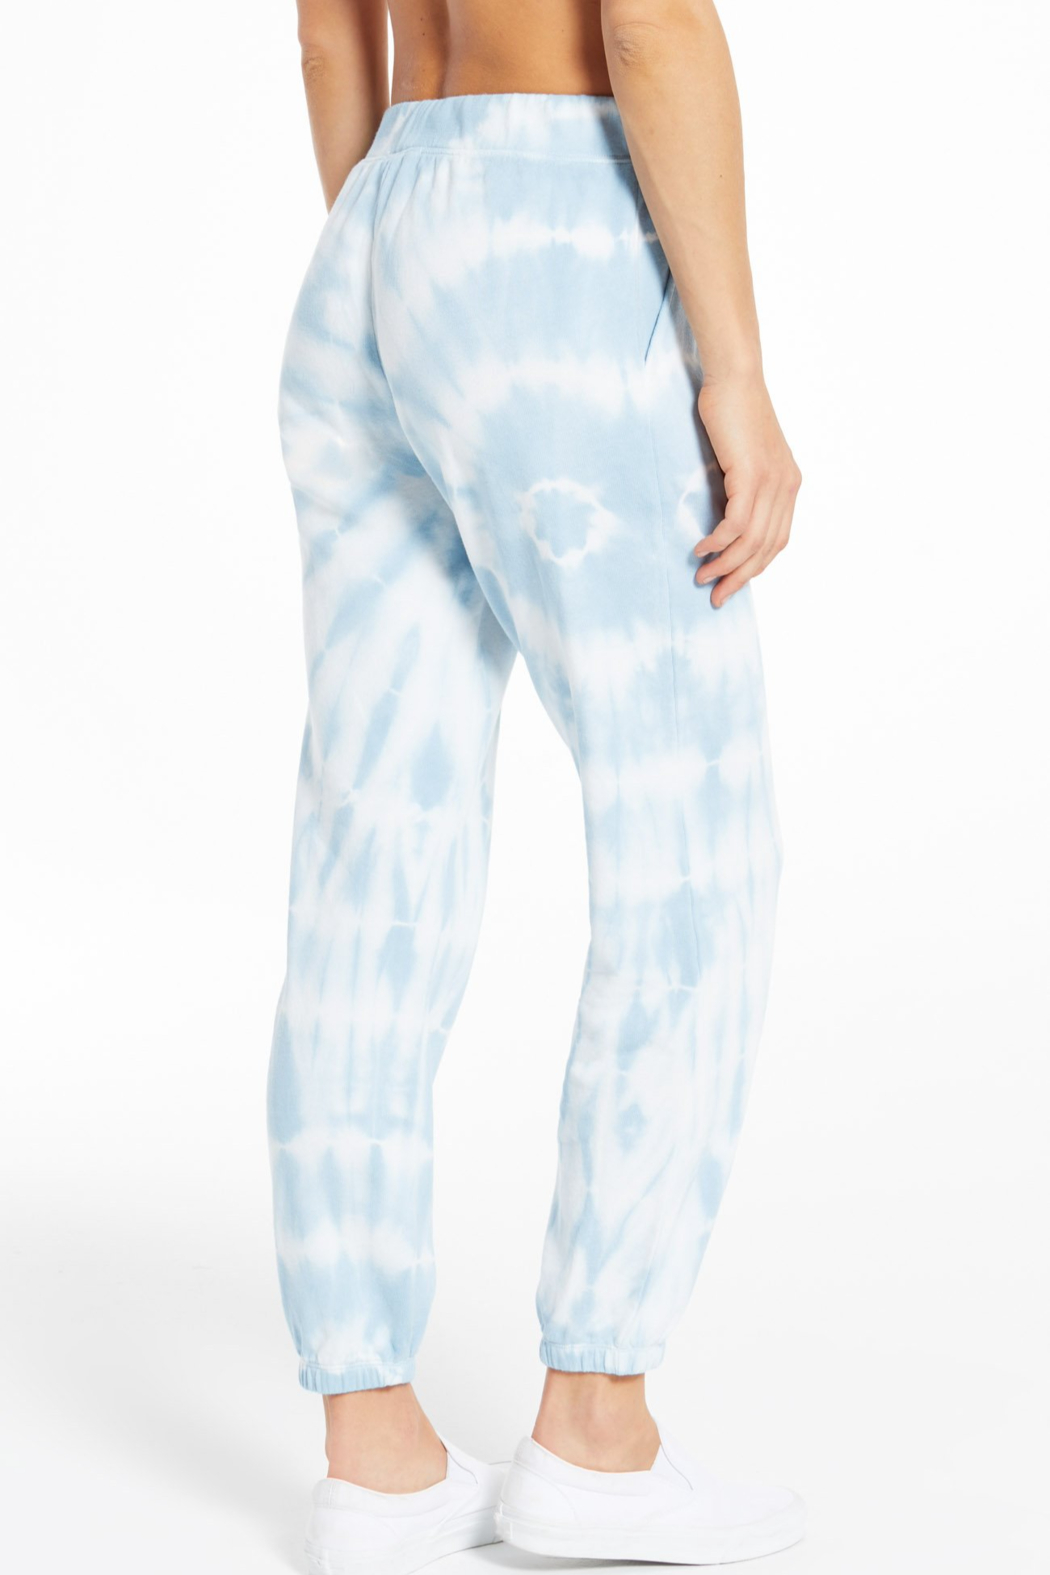 z supply Emery Spiral Tie-Dye Jogger - Front Full Image